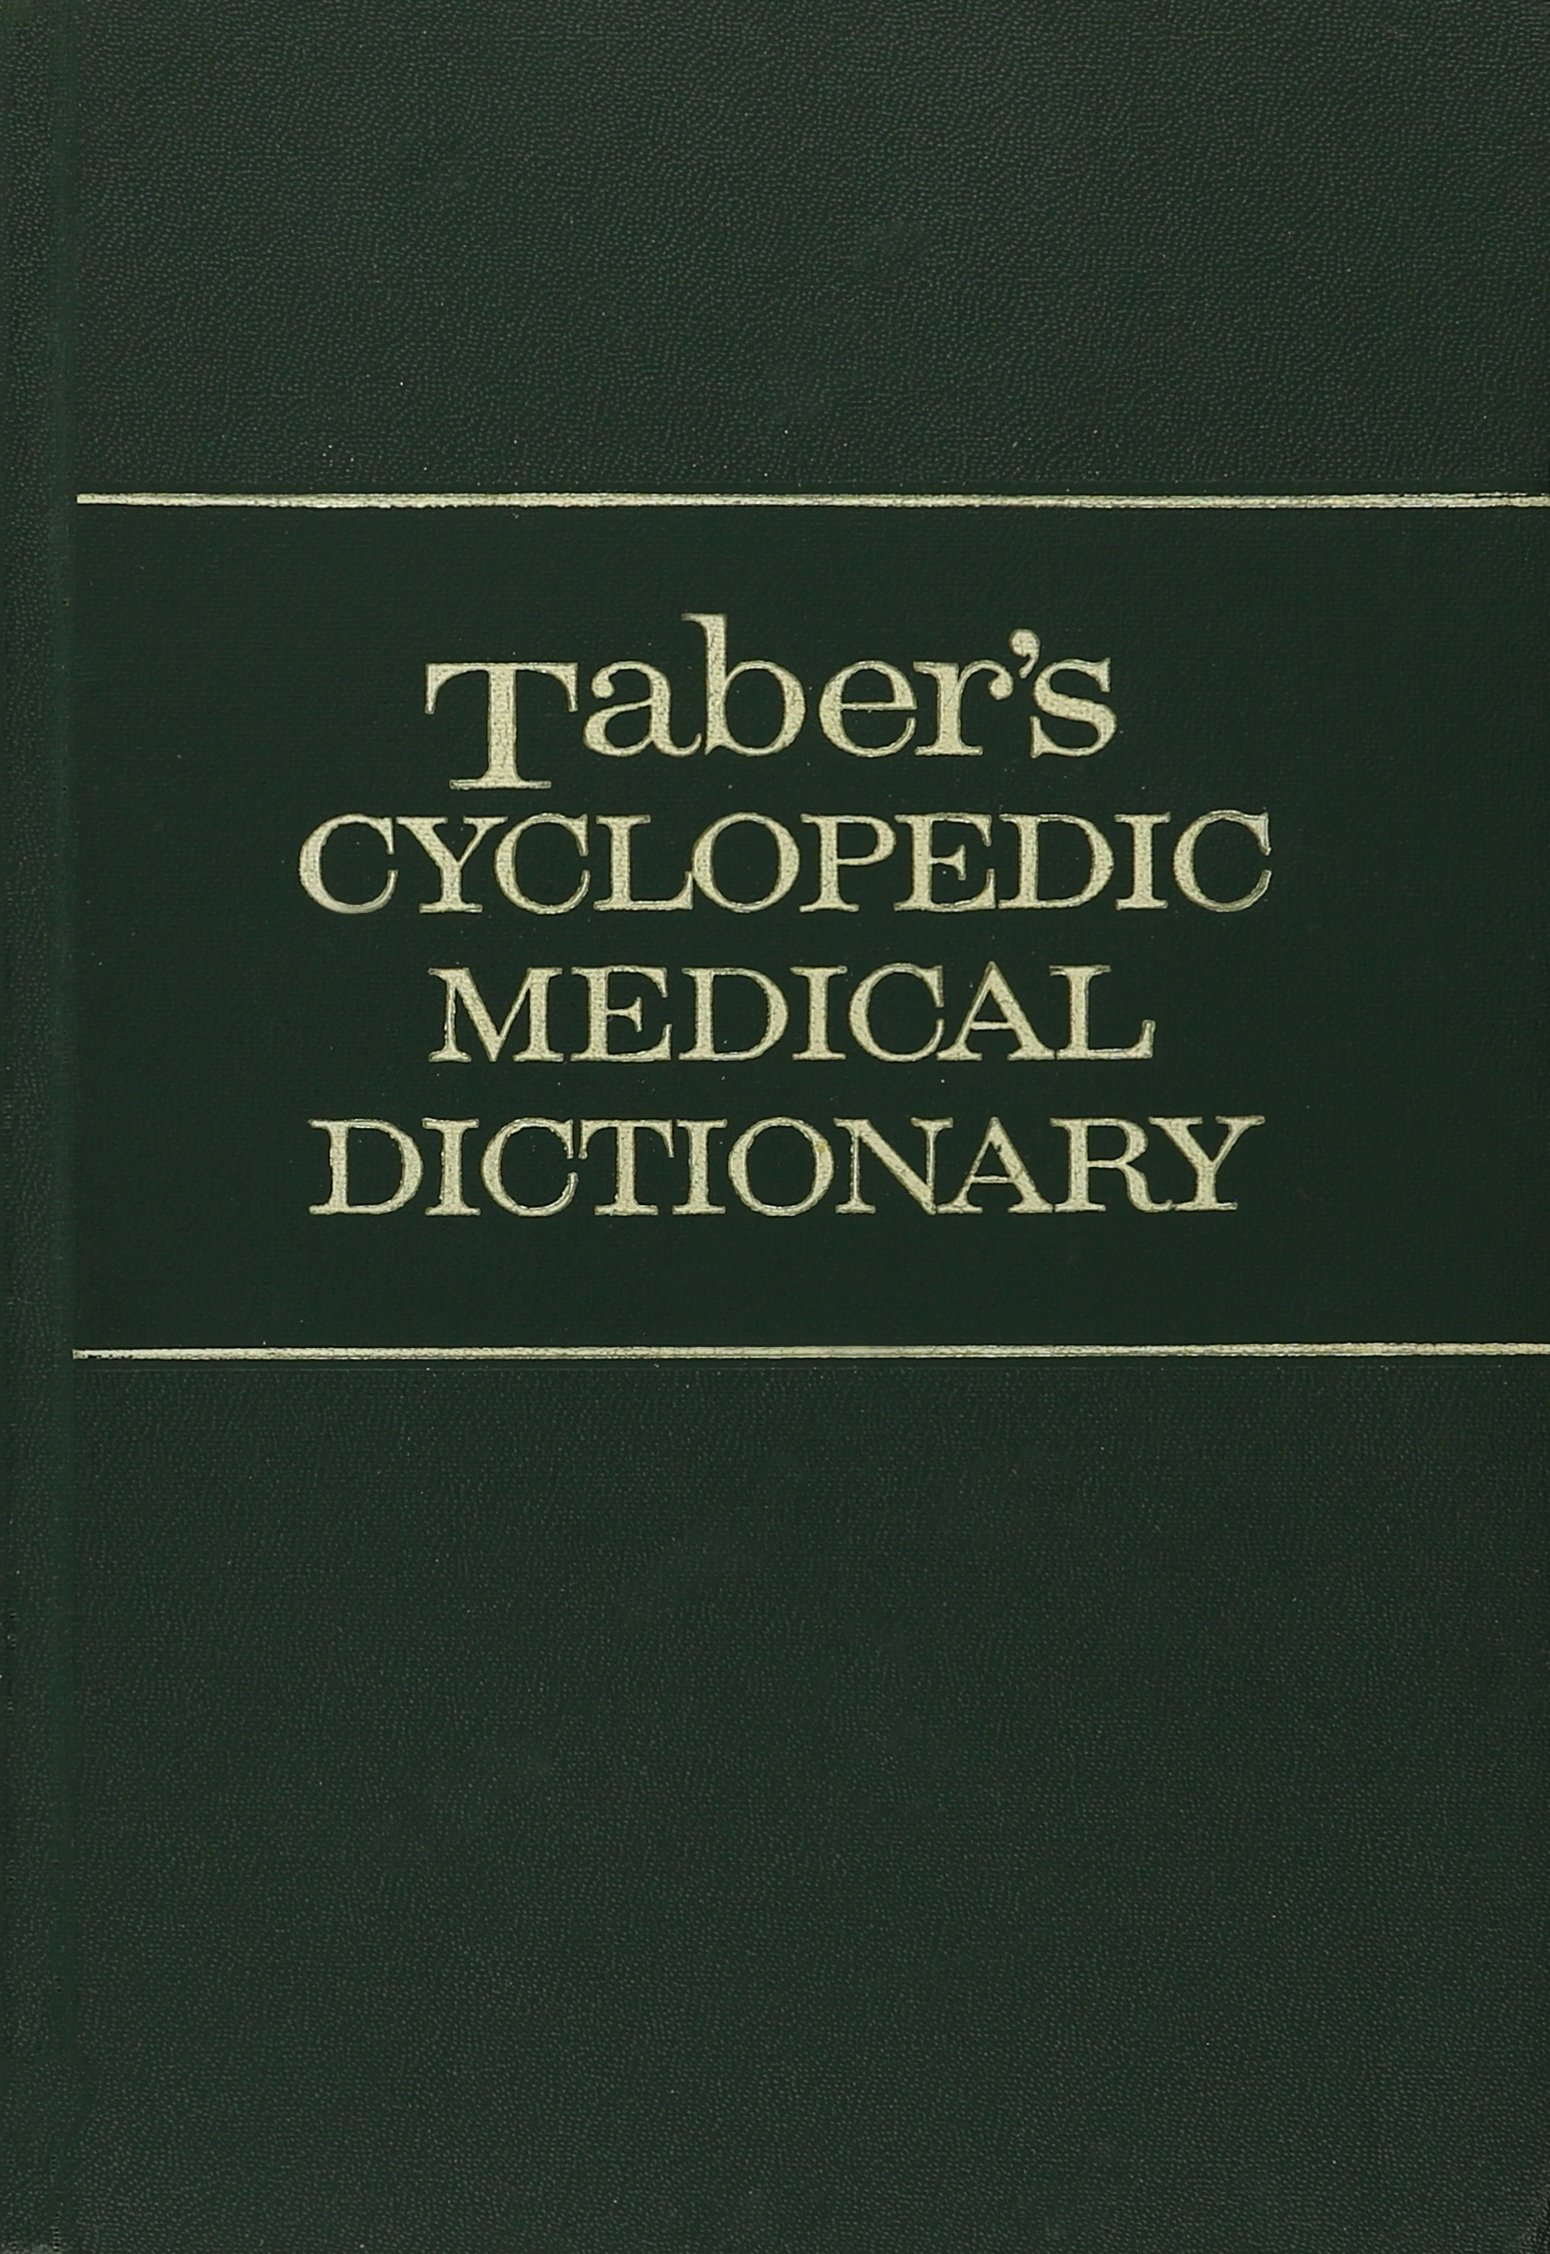 Tabers Cyclopedic Medical Dictionary Edition 11 Clarence Wilbur